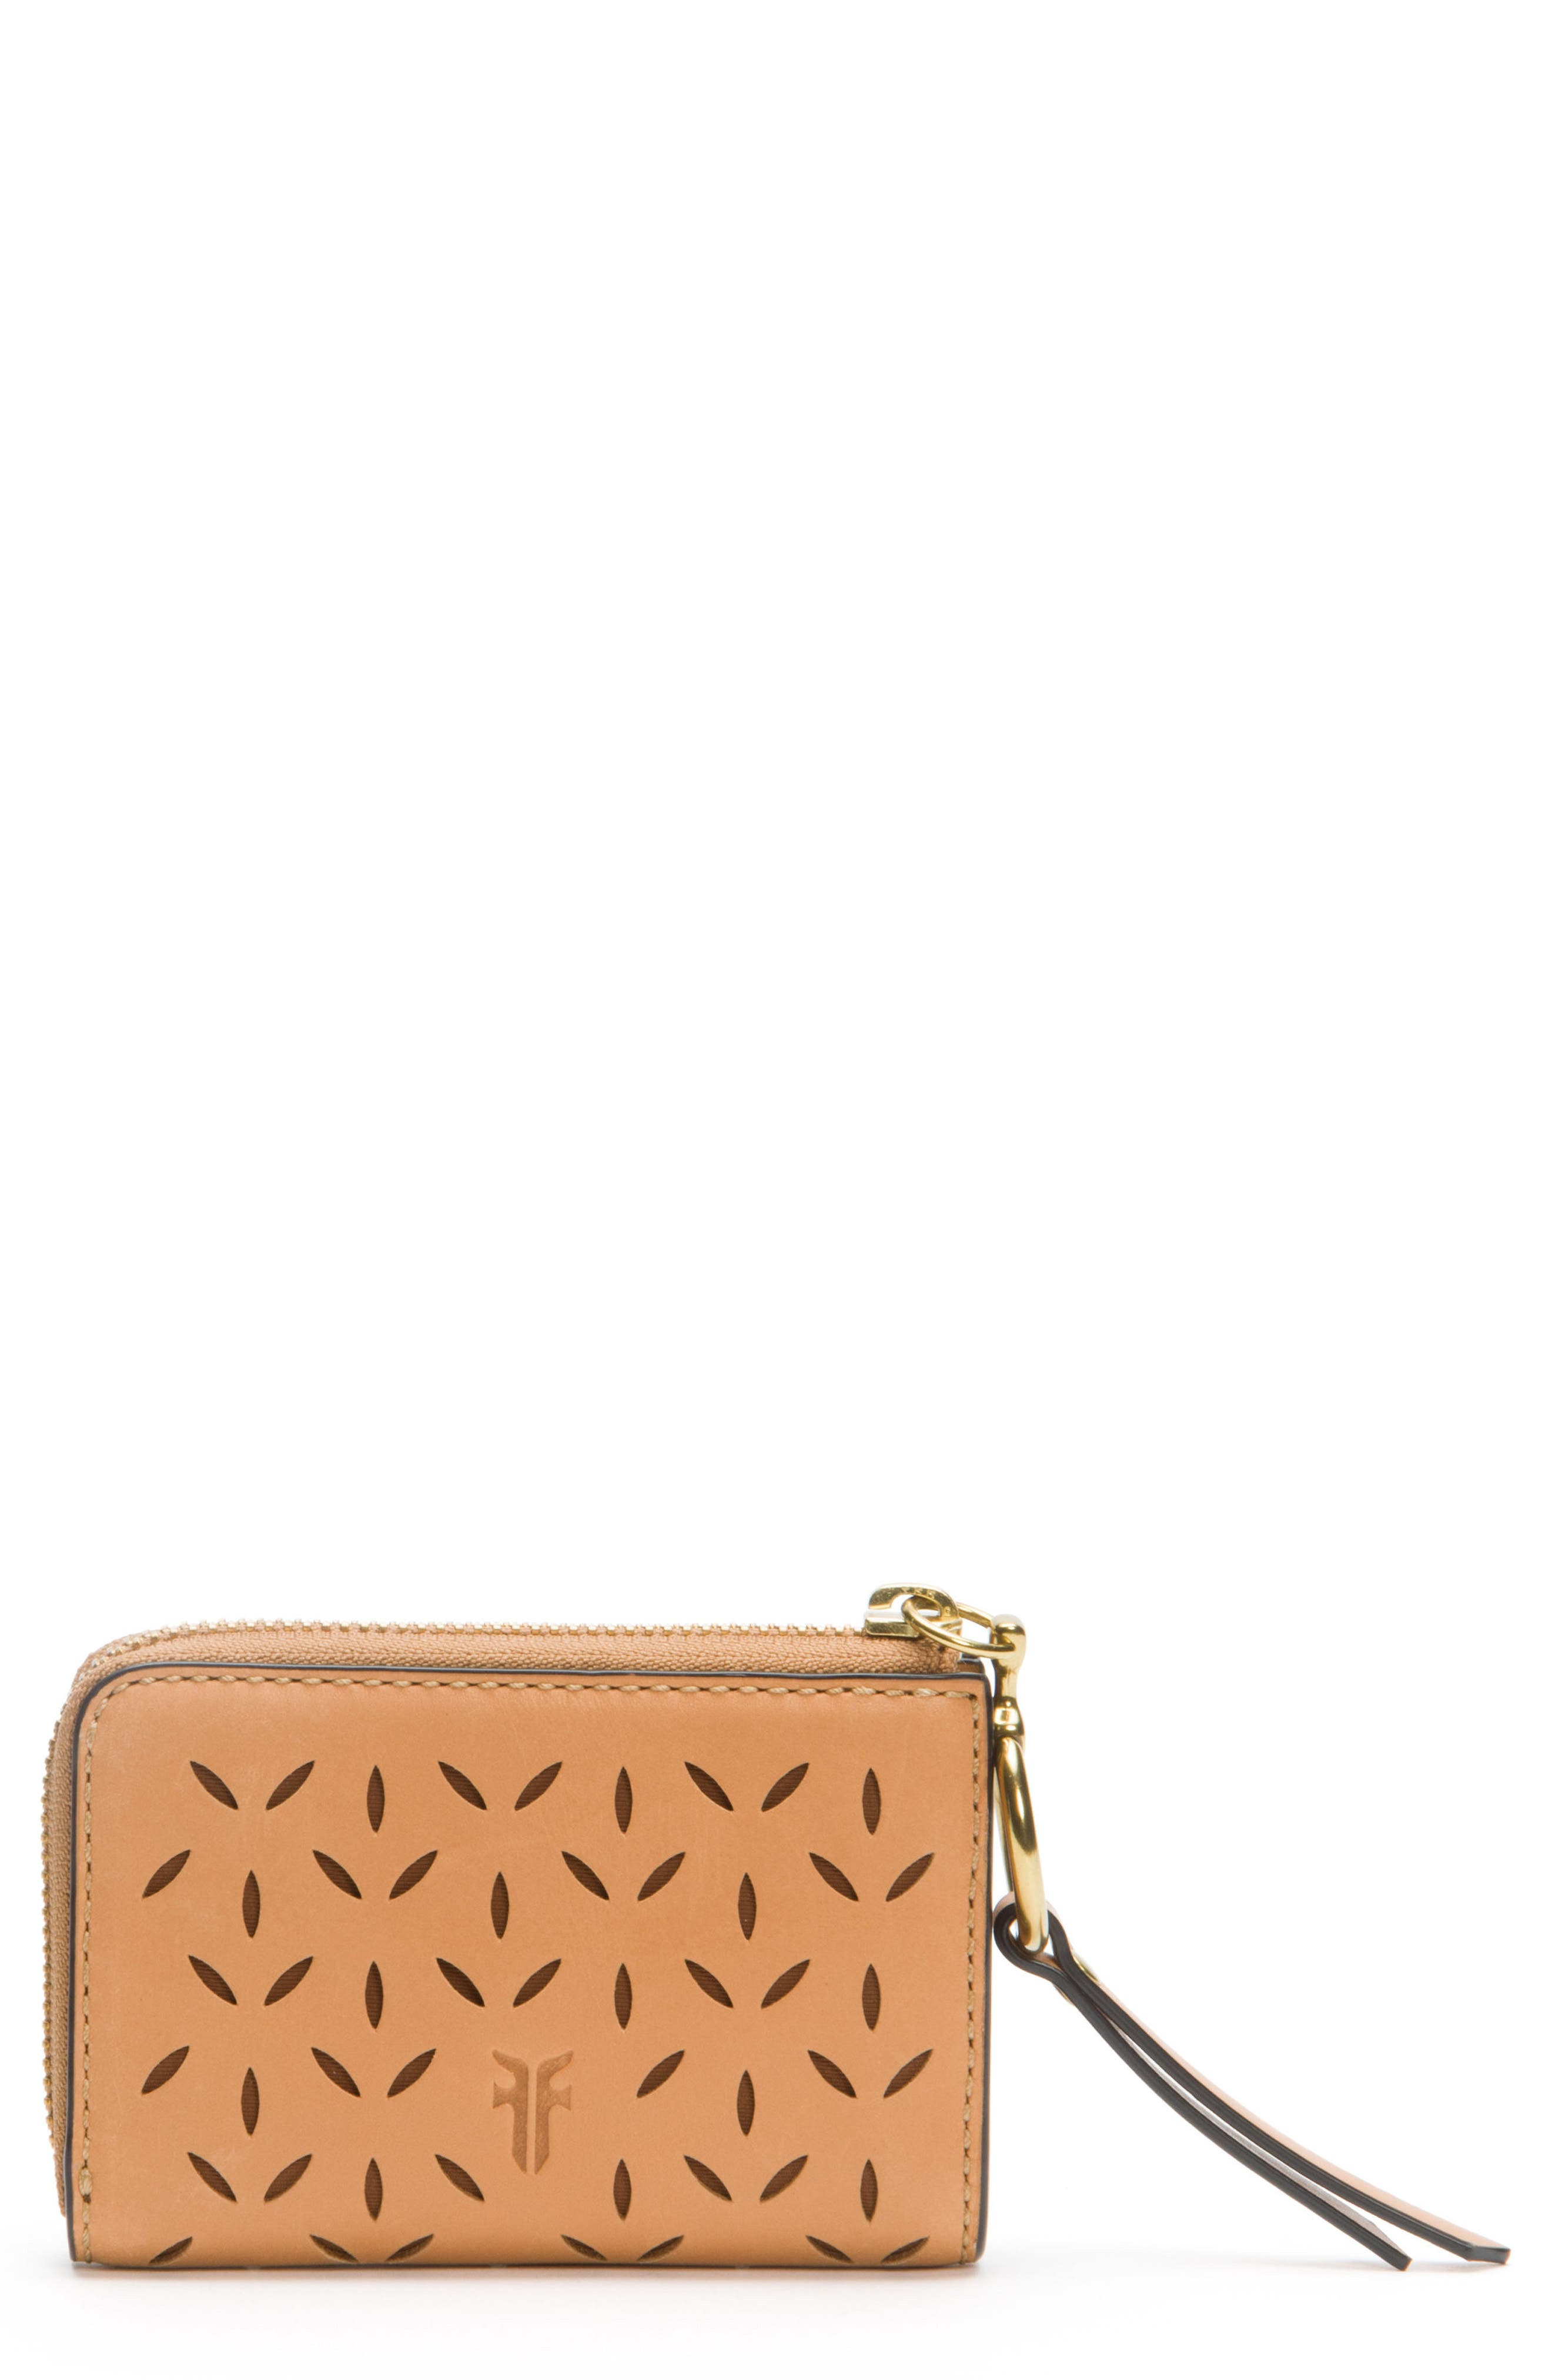 Ilana Small Perforated Leather Zip Wallet,                             Main thumbnail 3, color,